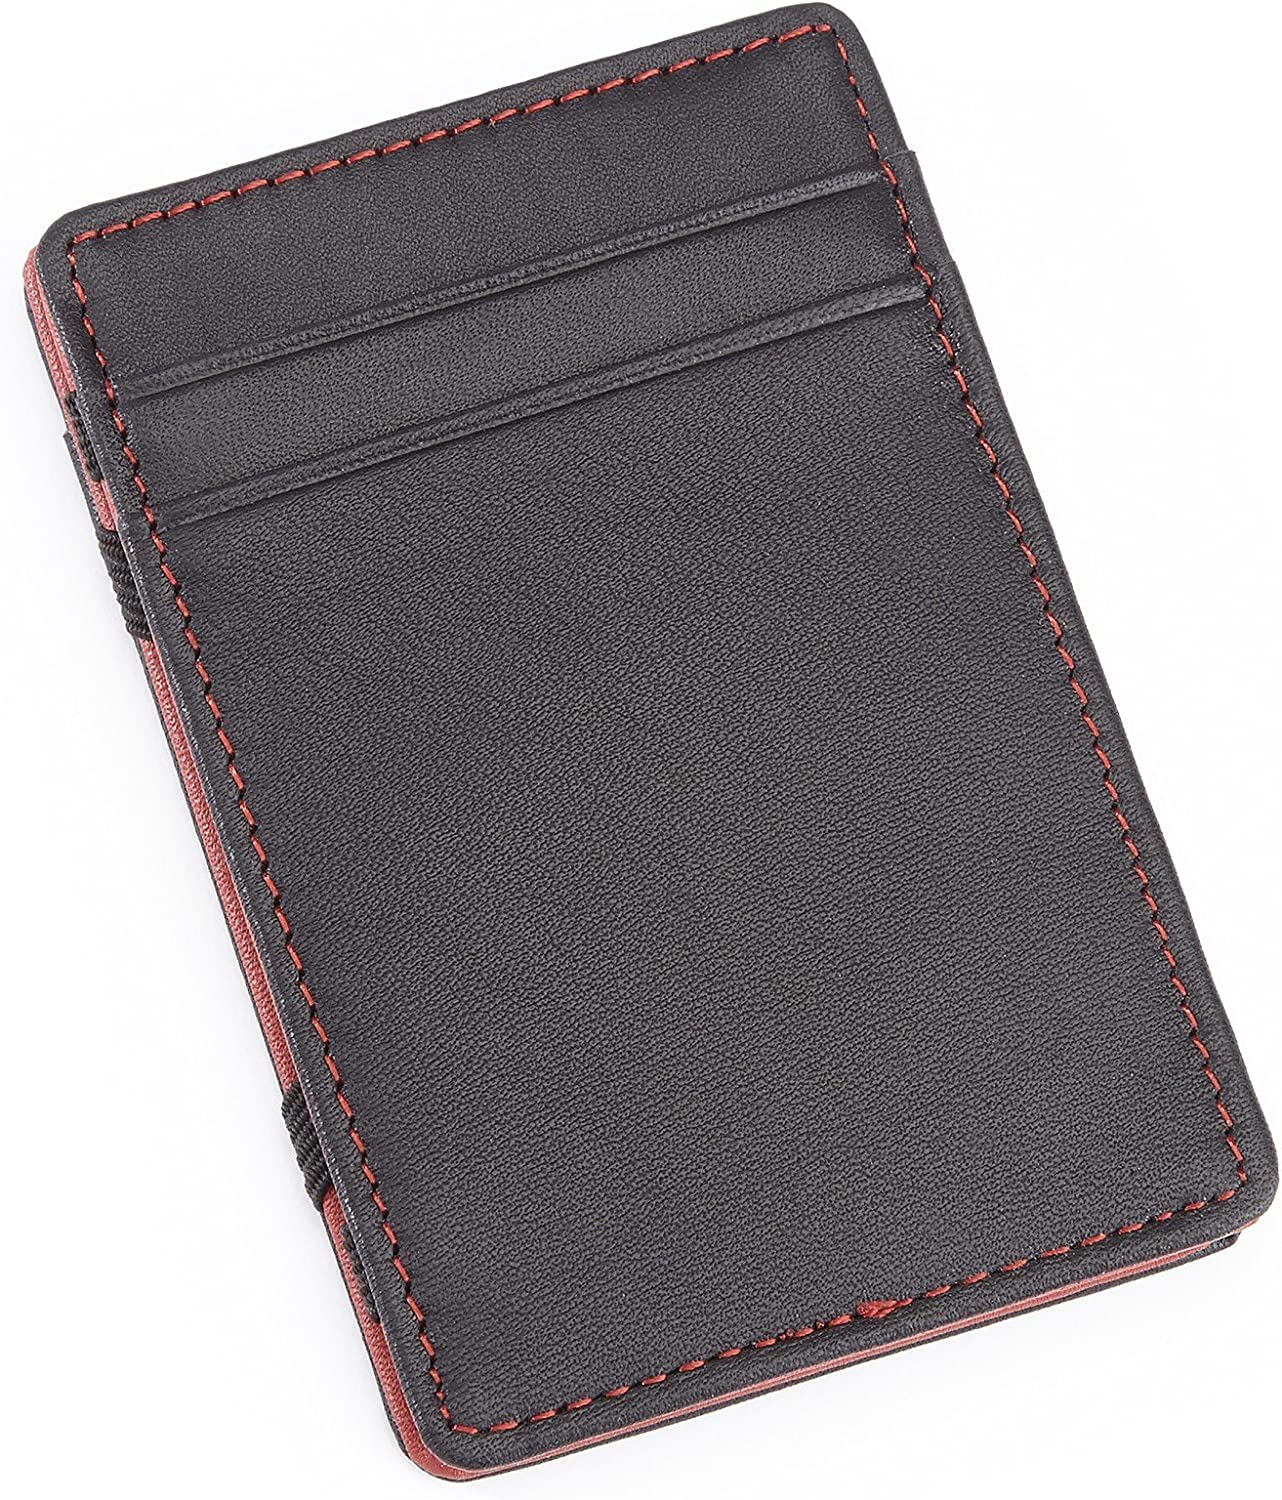 Royce Leather Magic Wallet in Leather, Black and Red, One Size